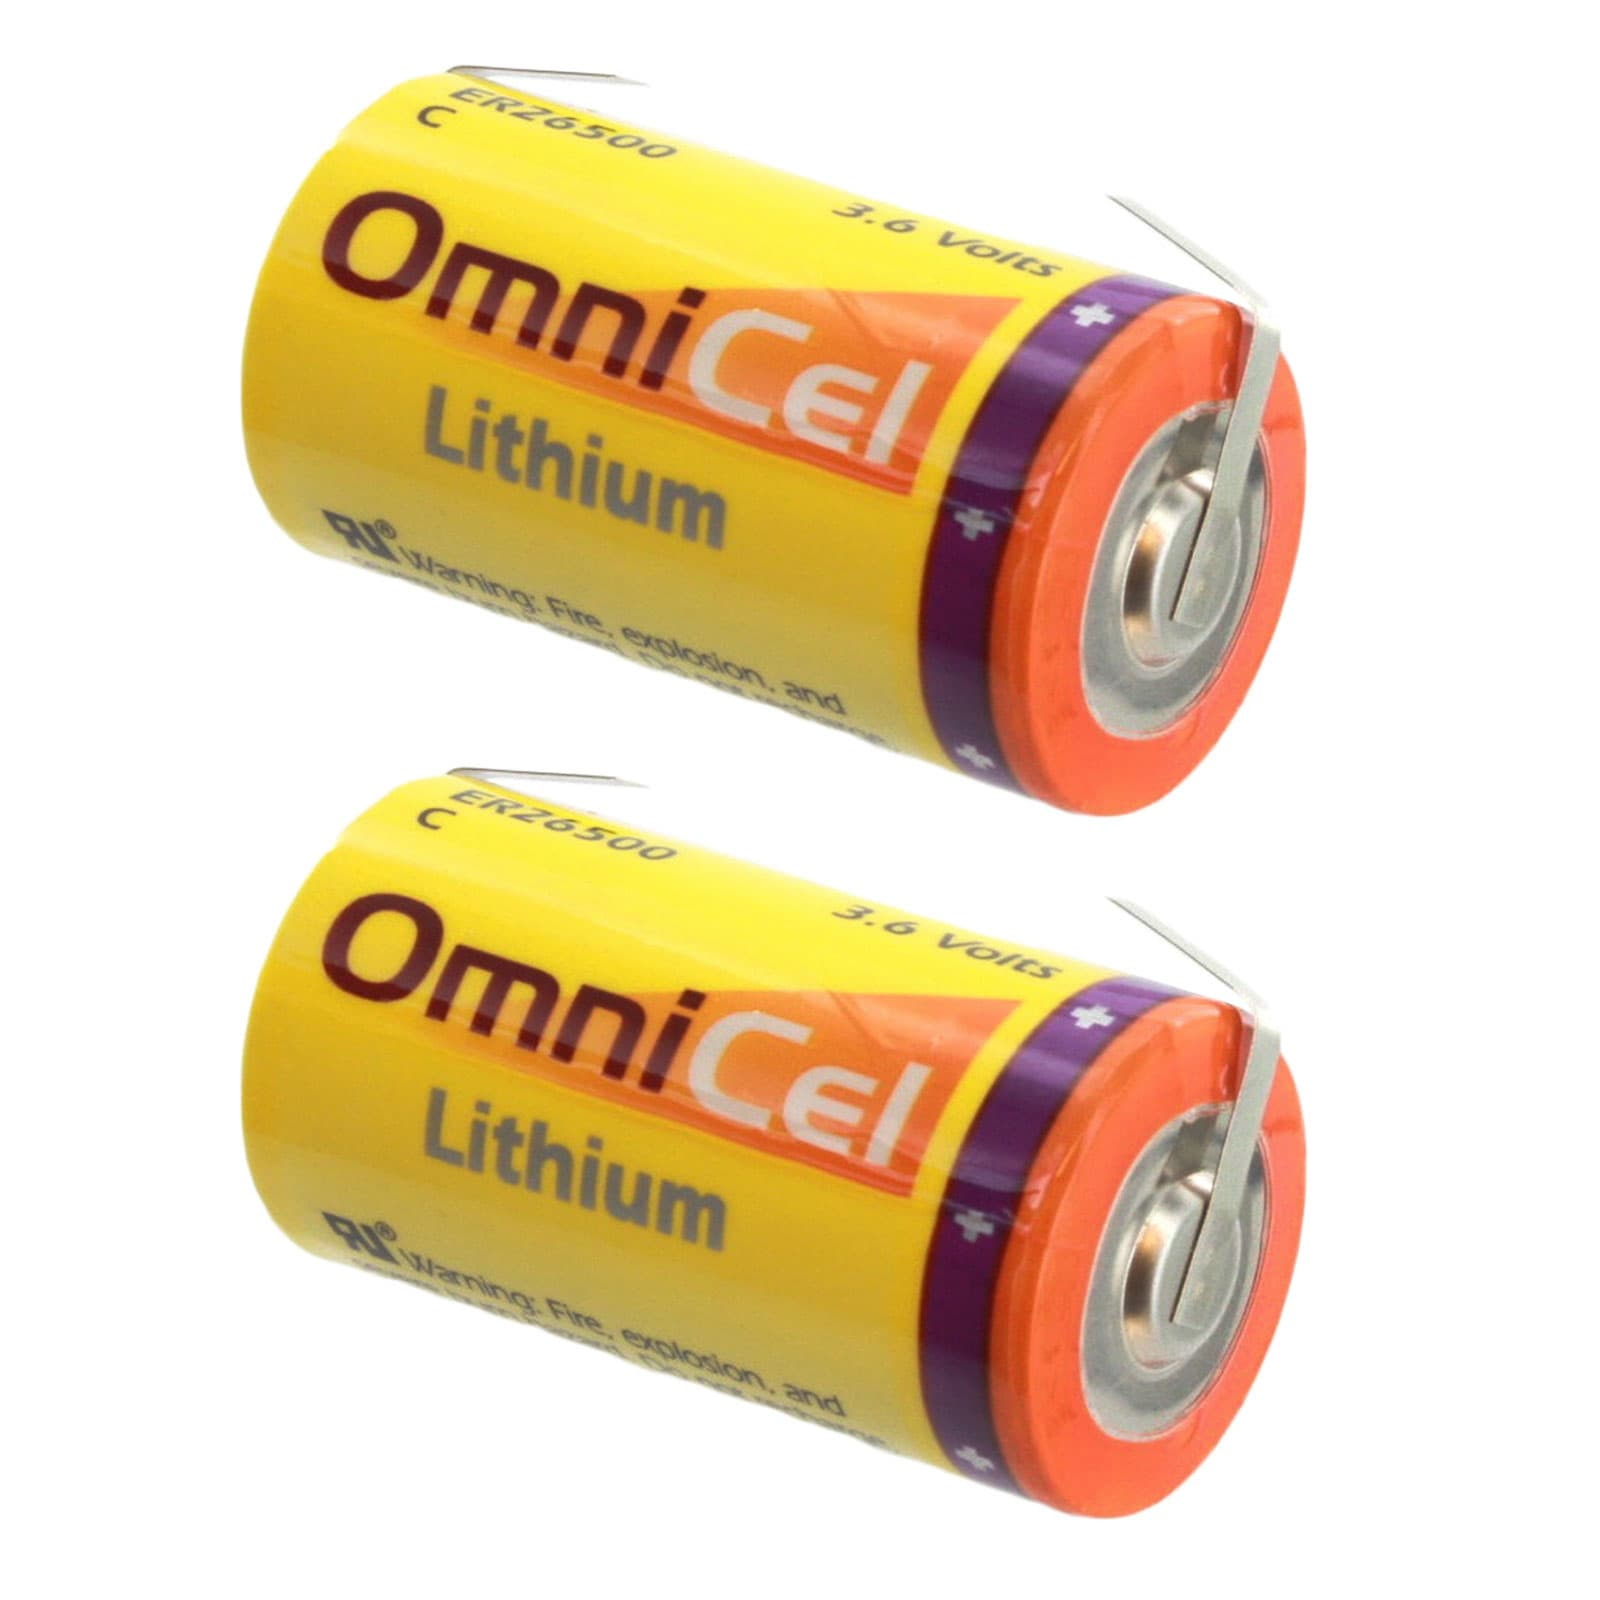 Theft Prevention AMR Add-ons Communications RFID Tracking 2x OmniCel ER26500 3.6V 8.5Ah Size C Lithium Battery w// Wire Leads For Data Collection Smart Munitions Asset Tracking